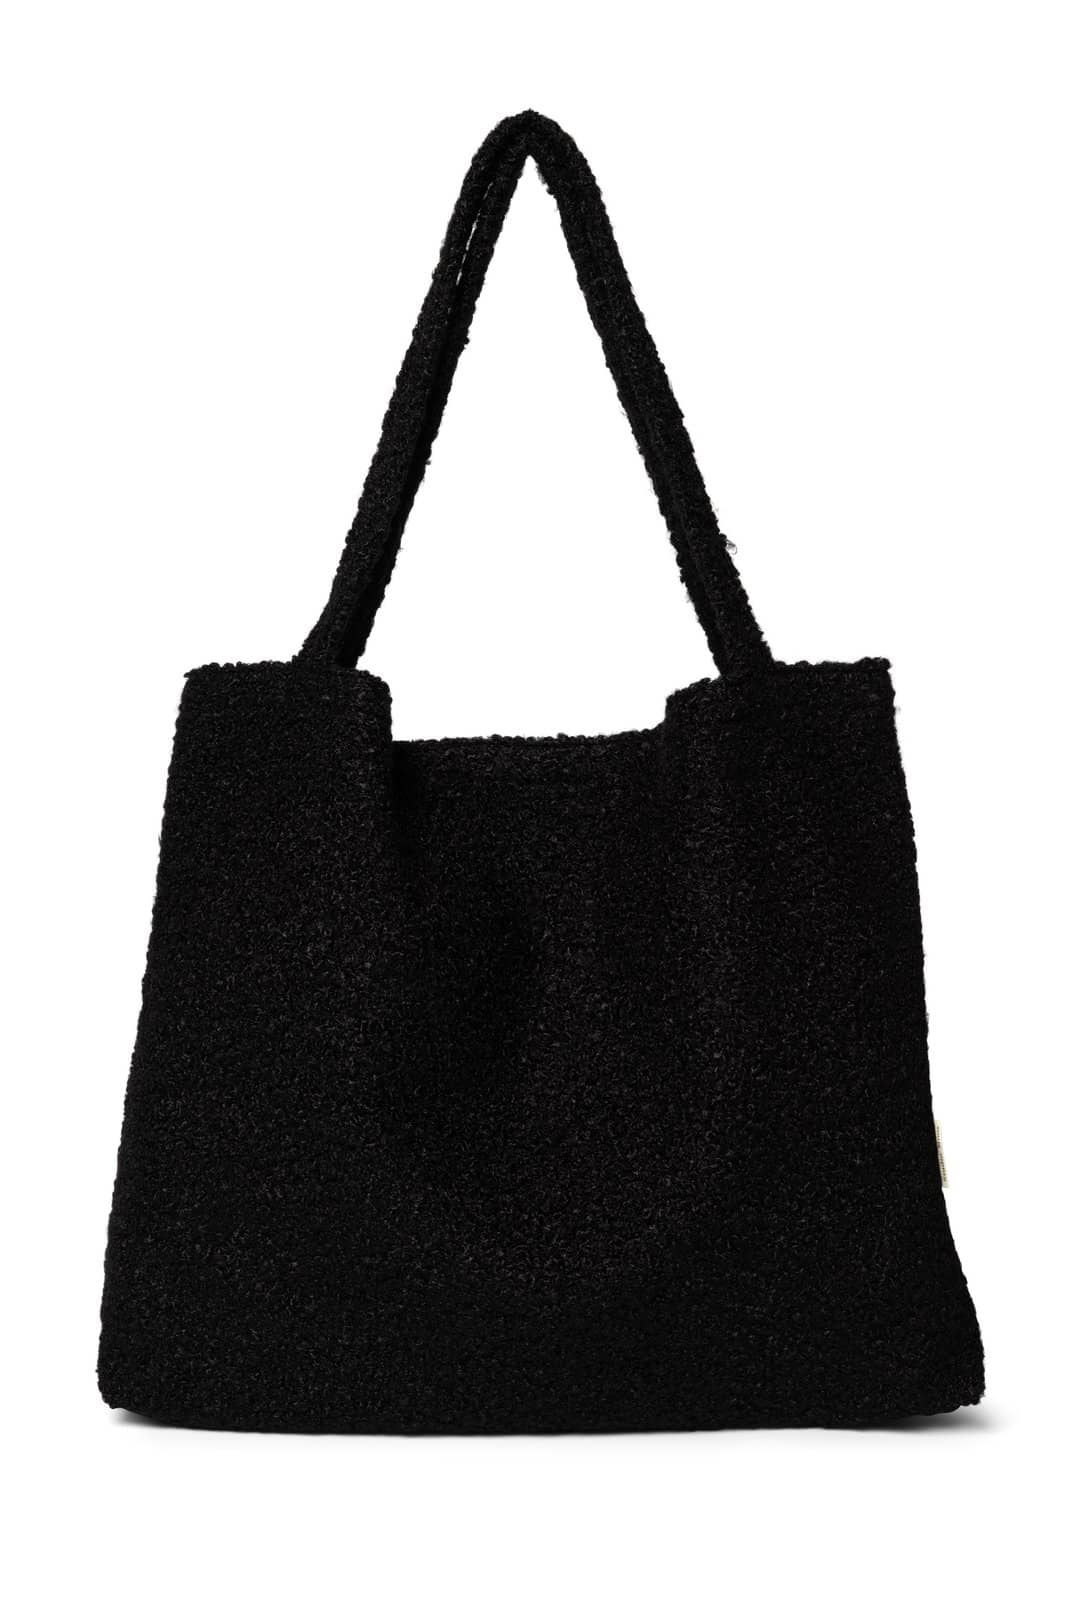 Studio Noos Studio Noos Black Bouclé mom-bag  - Hola BB